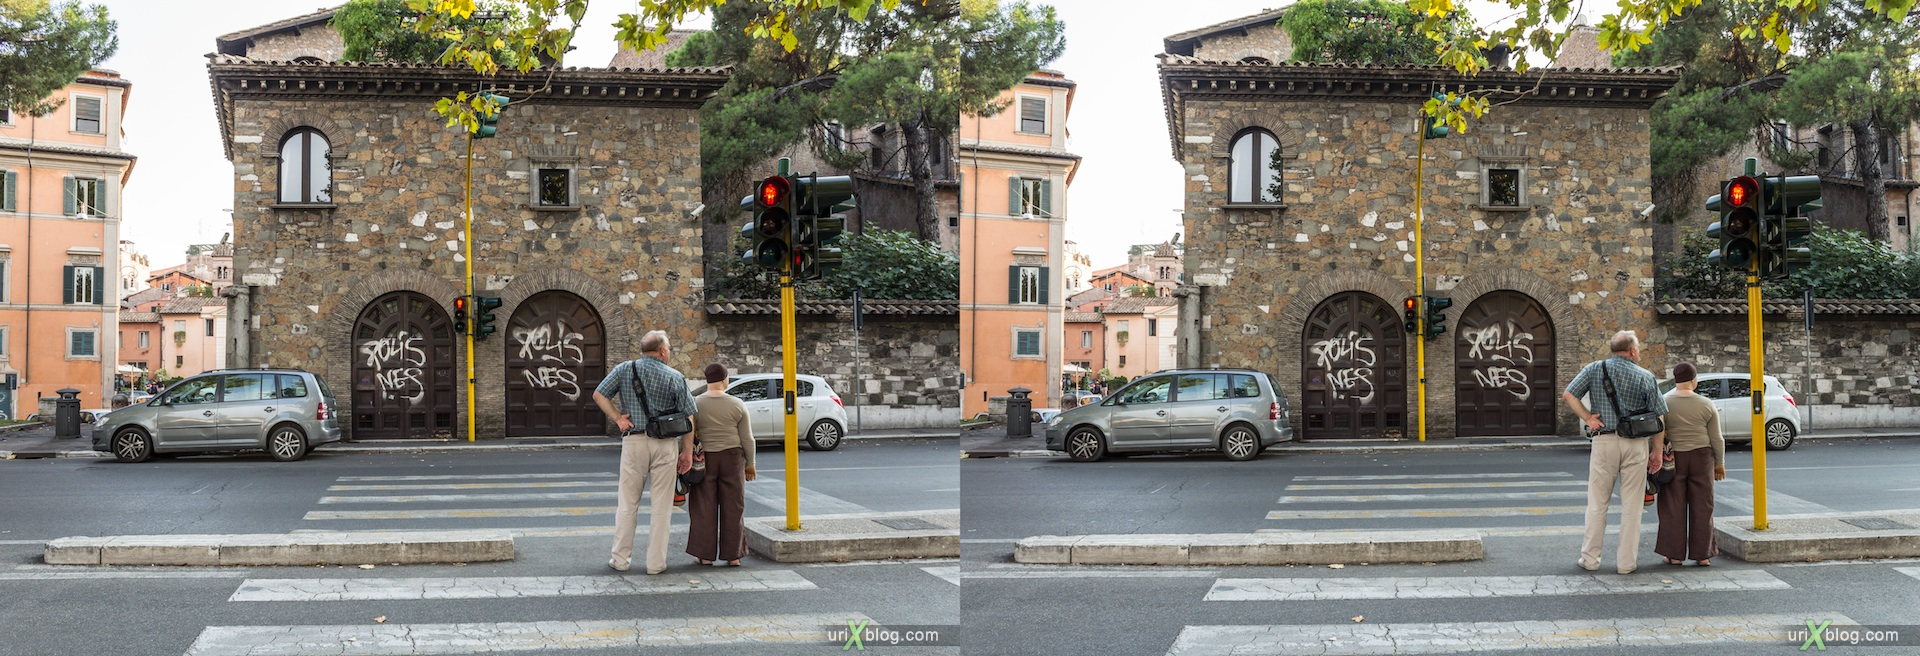 2012, Lungotevere Raffaello Sanzio street, Ponte Garibaldi bridge, crosswalk, 3D, stereo pair, cross-eyed, crossview, cross view stereo pair